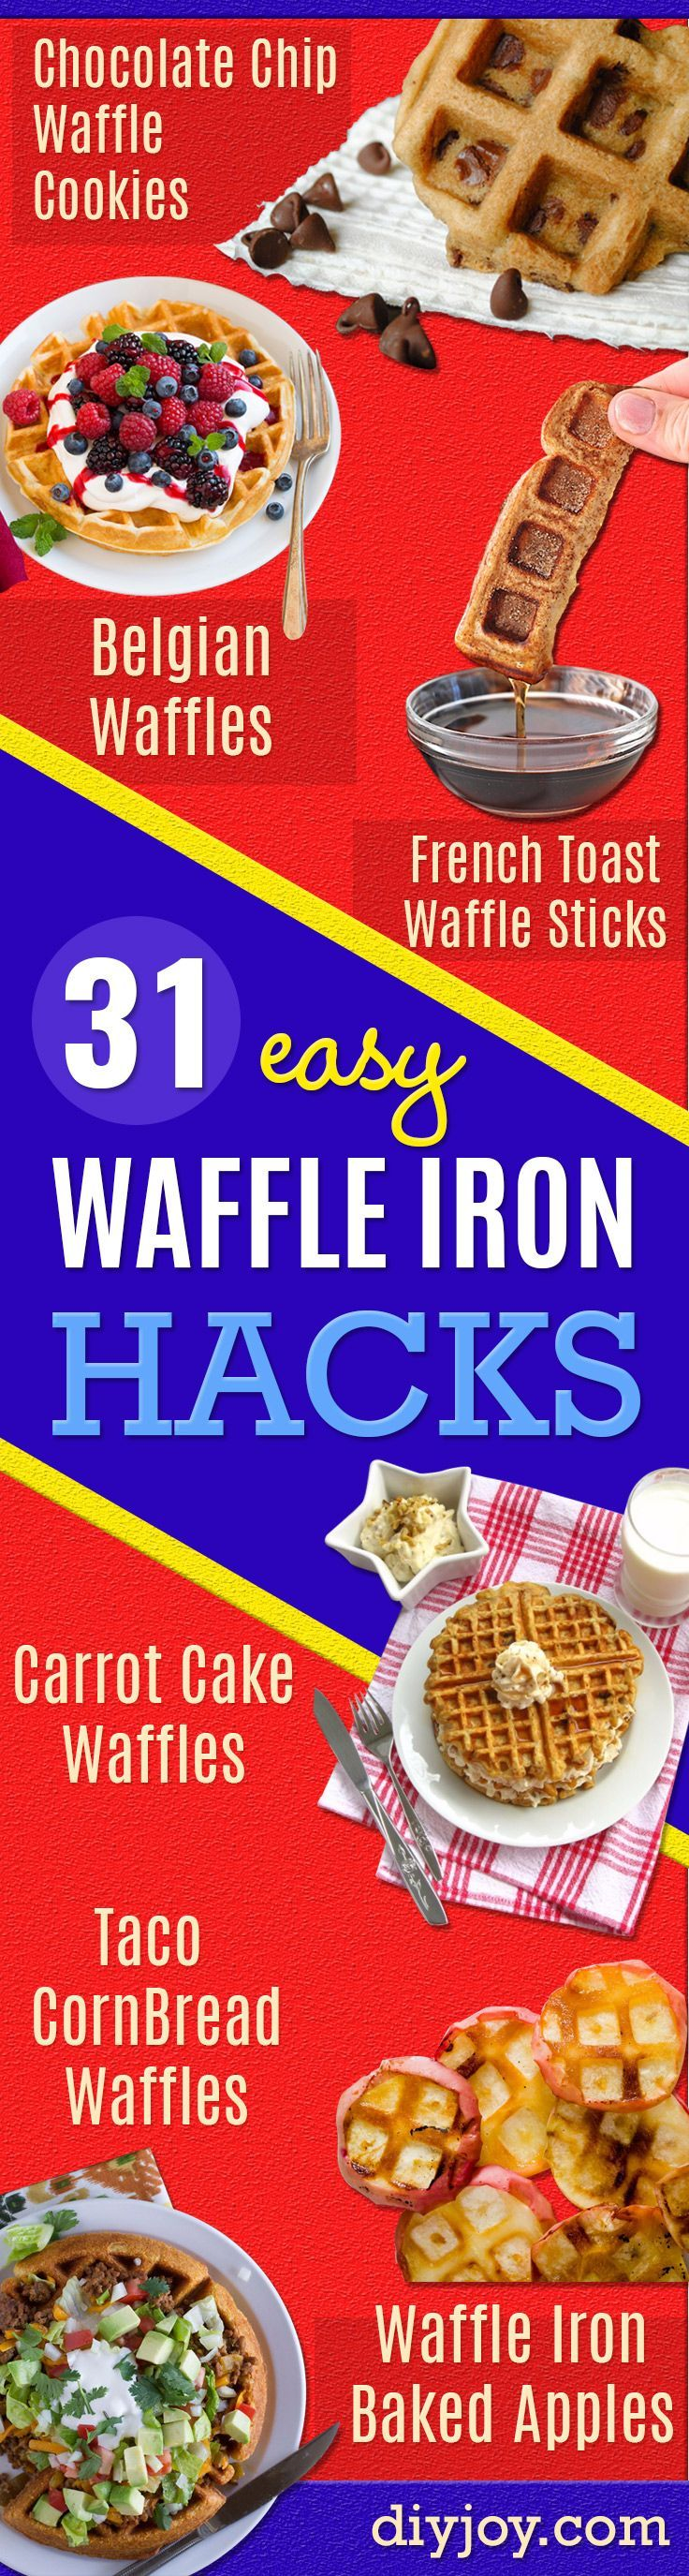 216 best cooking tips images on pinterest cooker recipes healthy